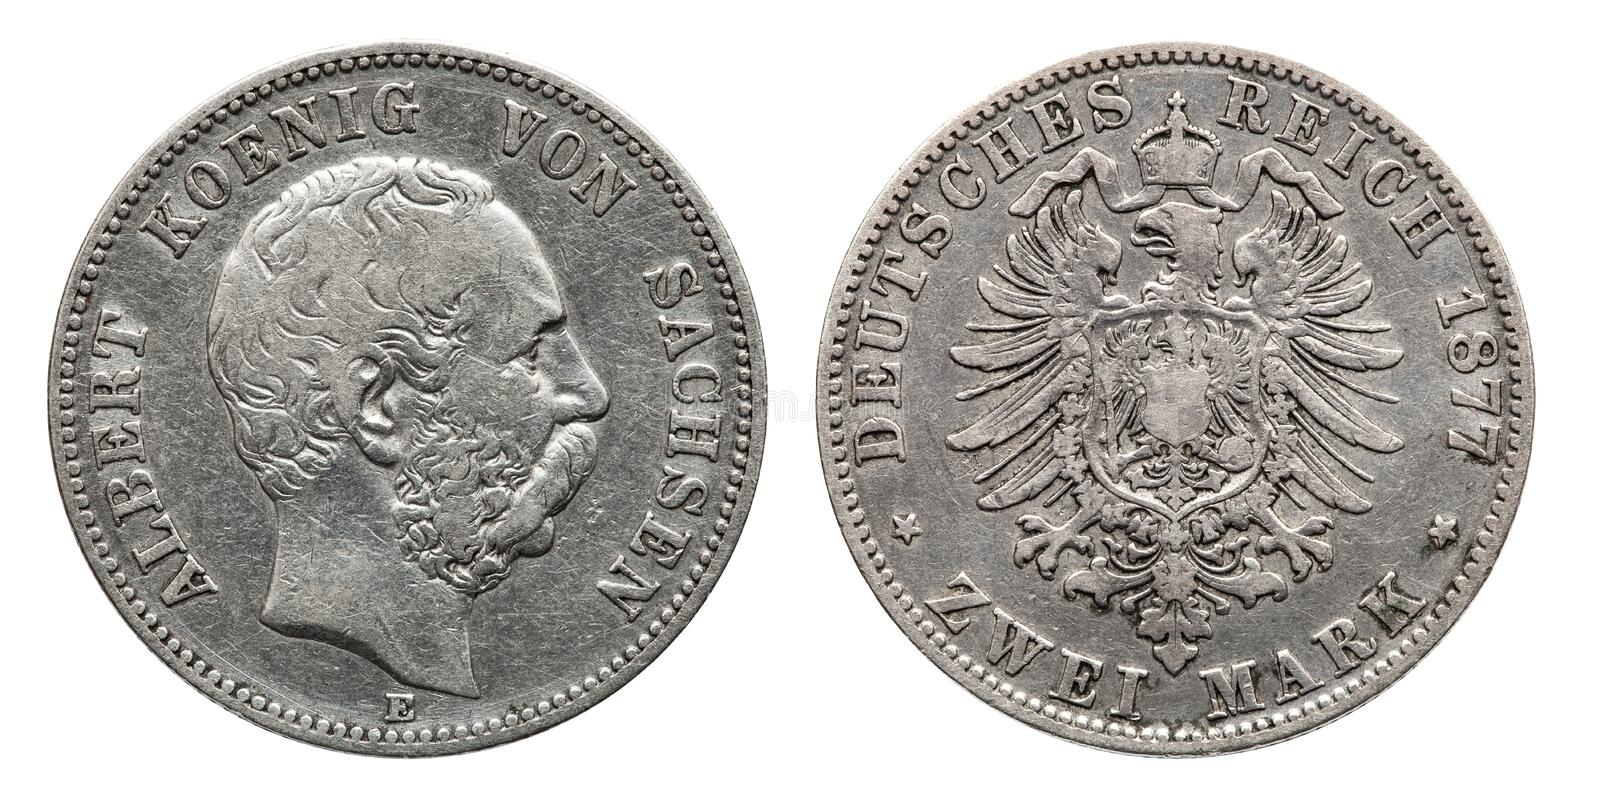 Germany German Saxonia silver coin 2 two mark 1876. Germany German Prussia Prussian silver coin 2 two mark 1876 Albert royalty free stock photo